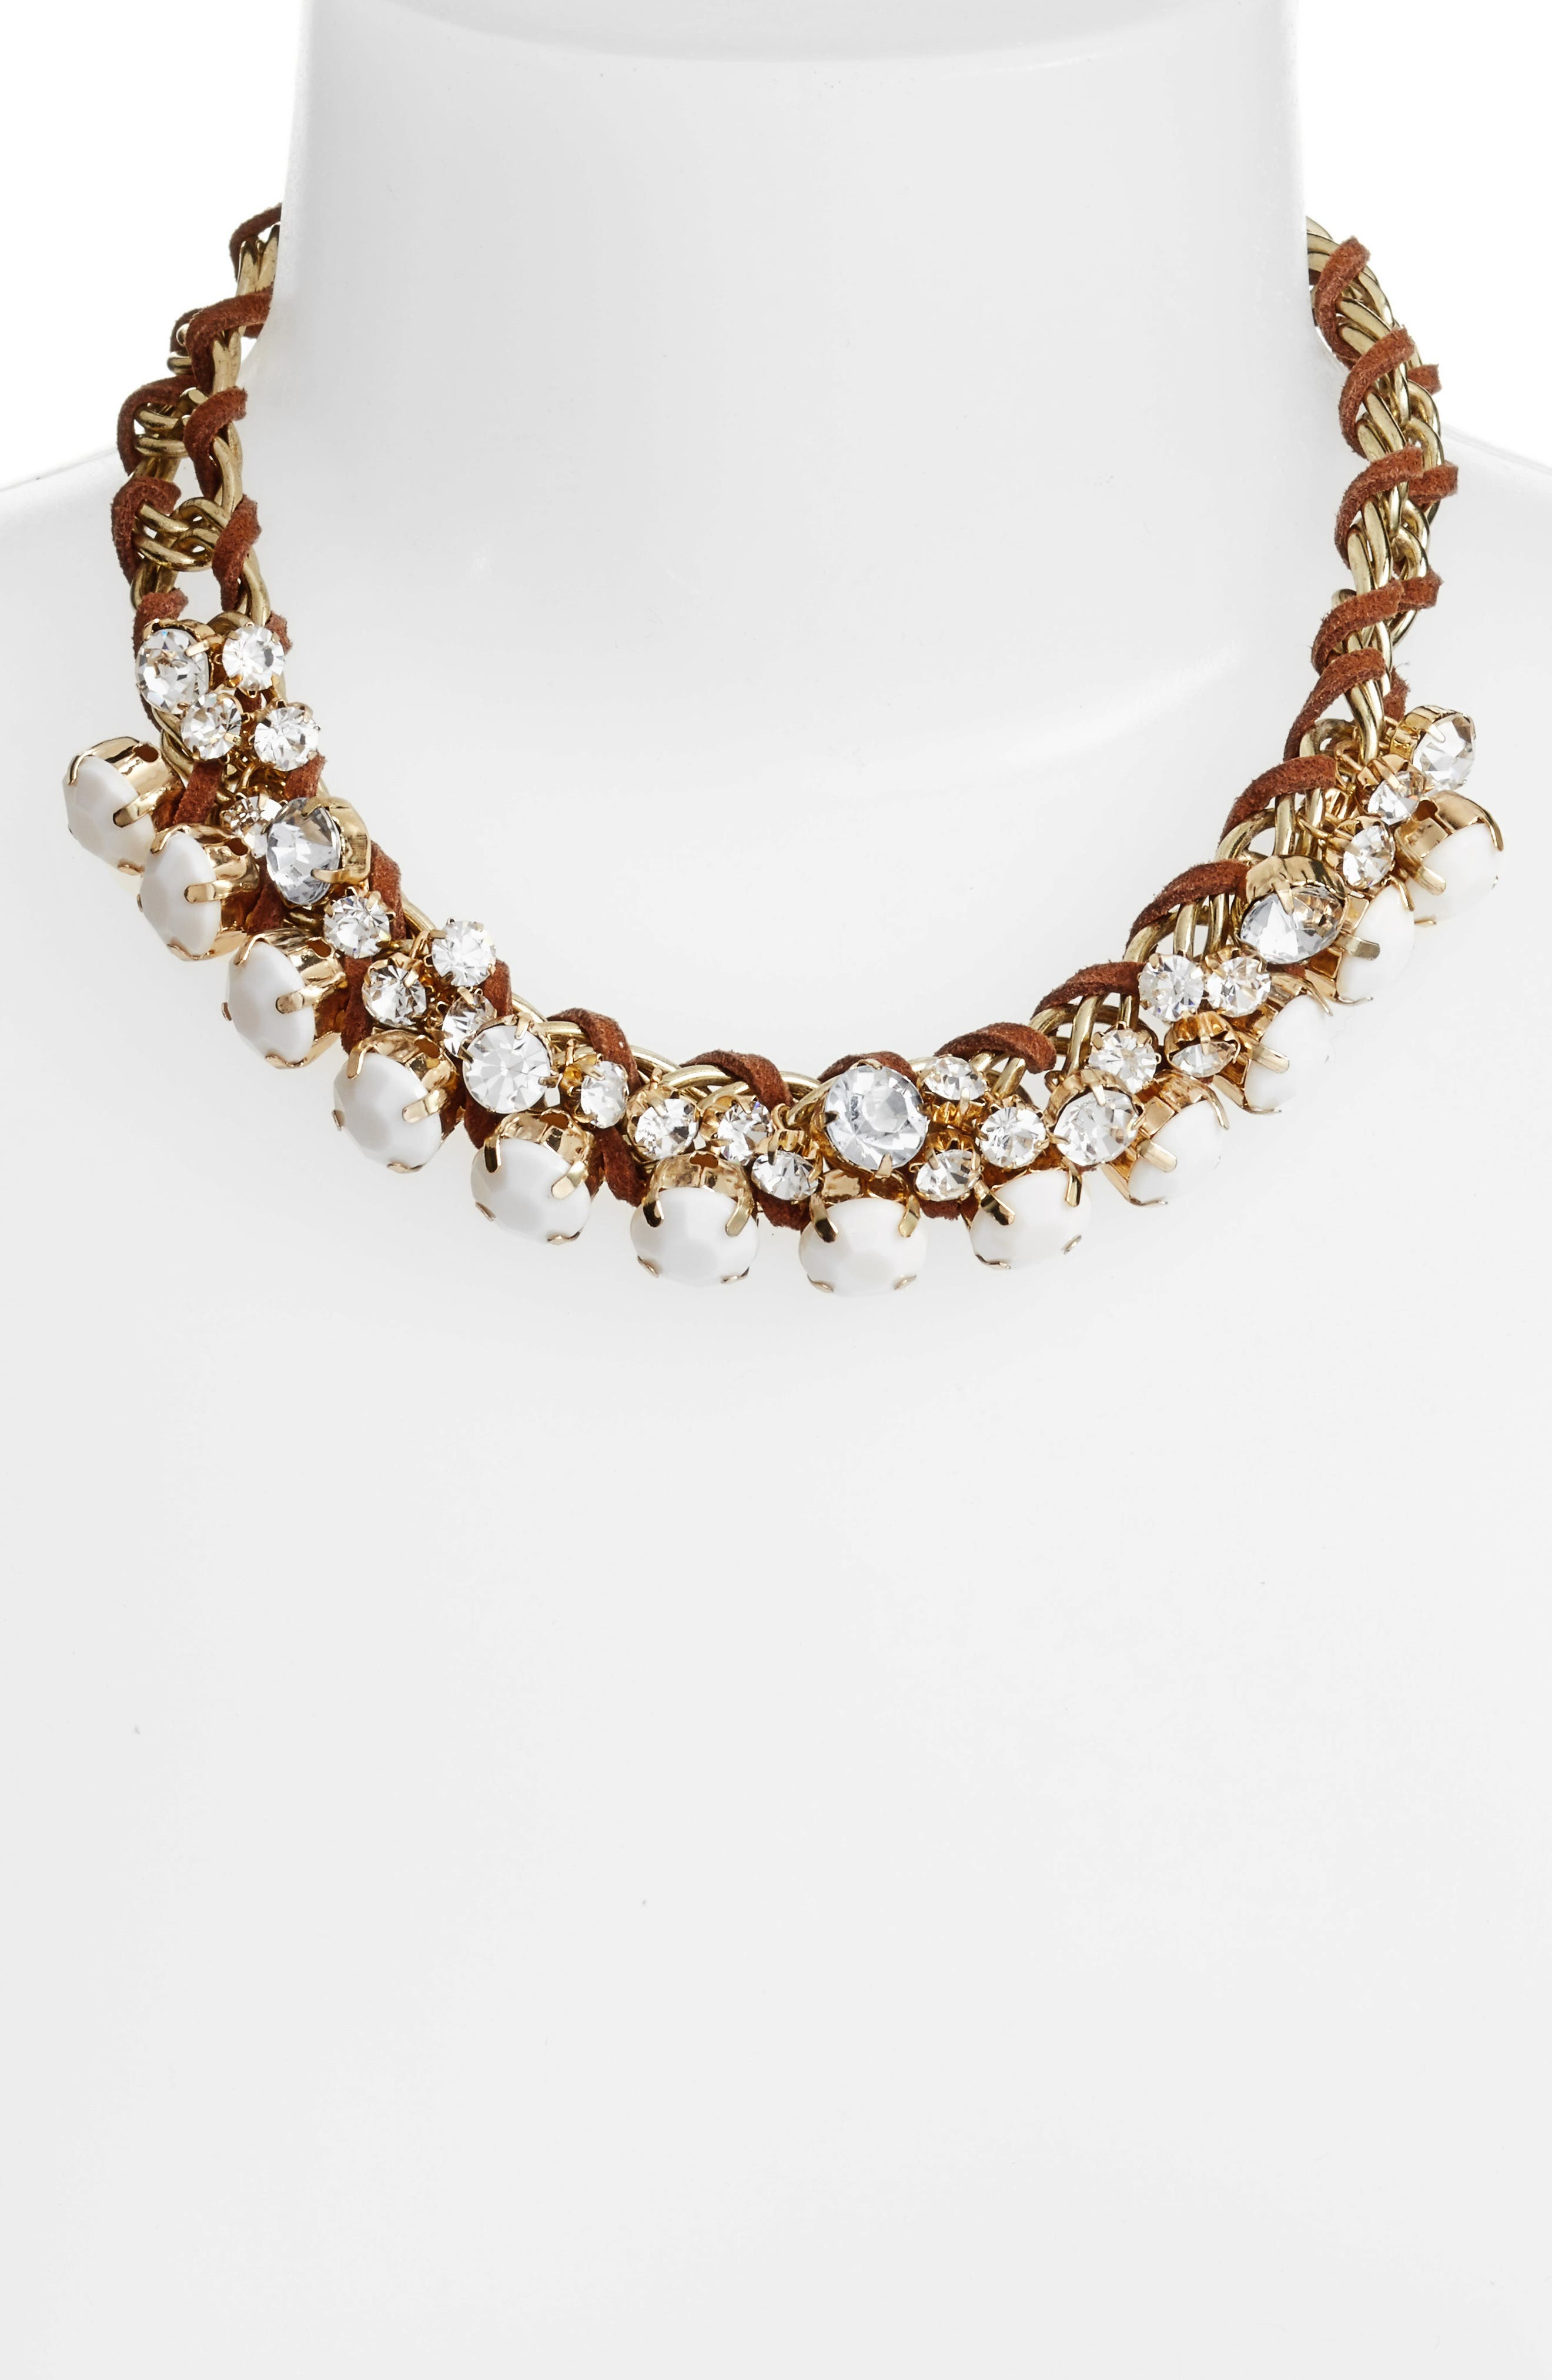 Woven Statement Necklace,                             Alternate thumbnail 2, color,                             Brown/ Beige